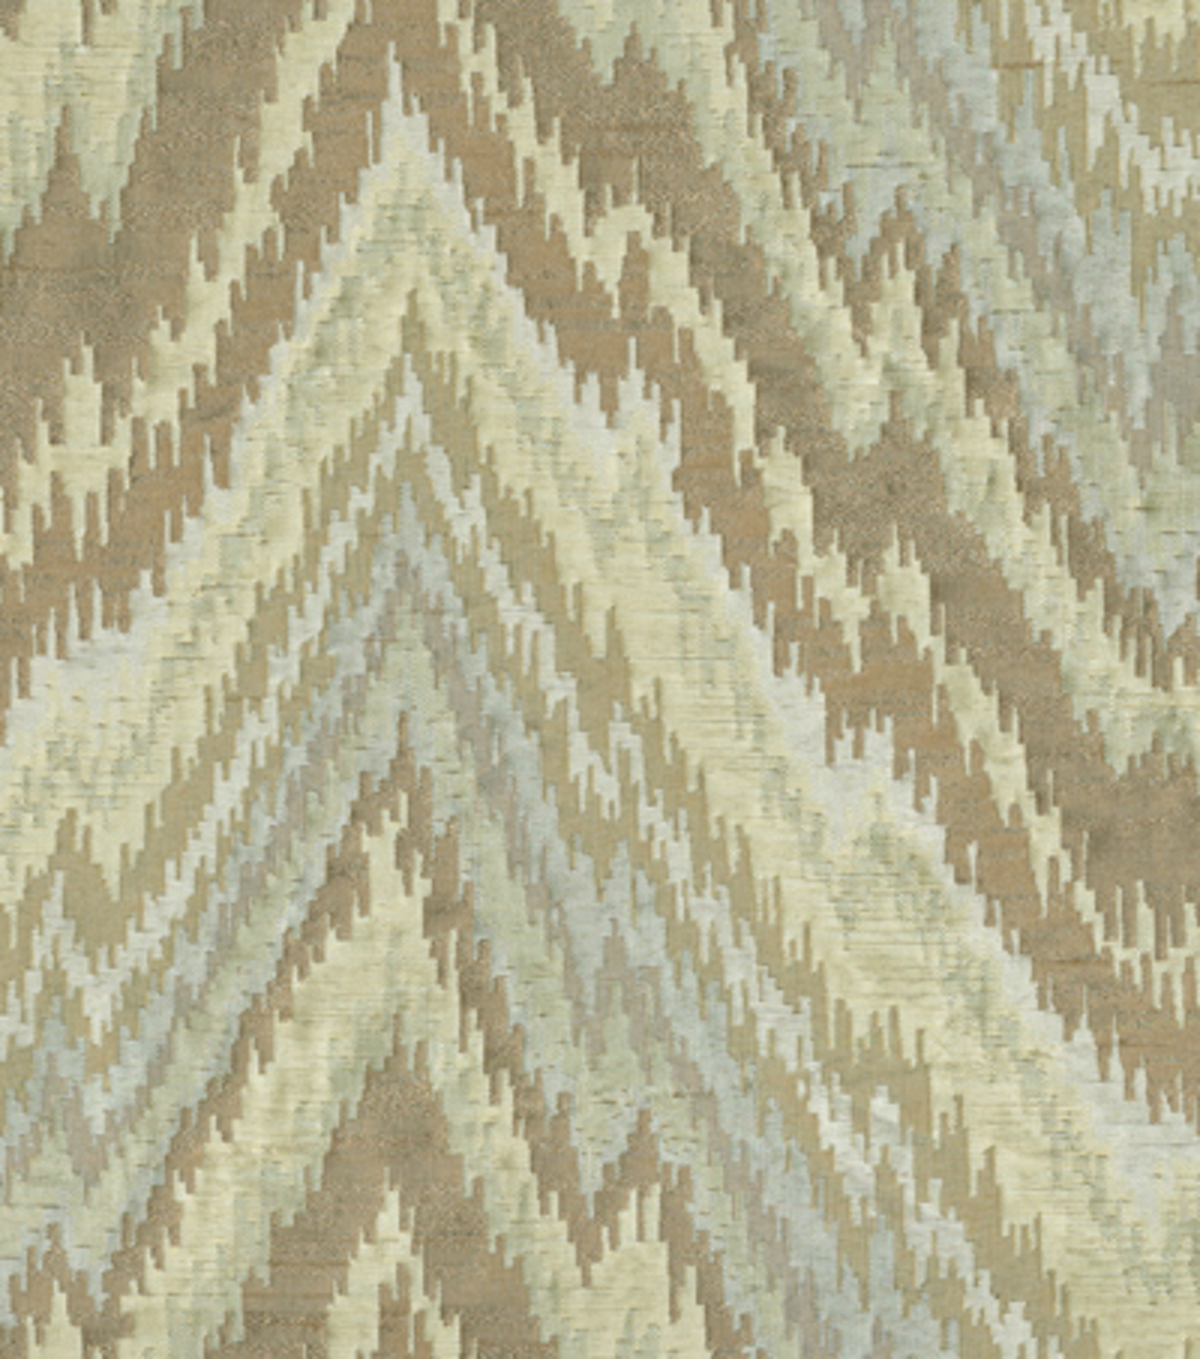 Home Decor 8\u0022x8\u0022 Fabric Swatch-Upholstery-Finnie Flamestitch/Lemongrass